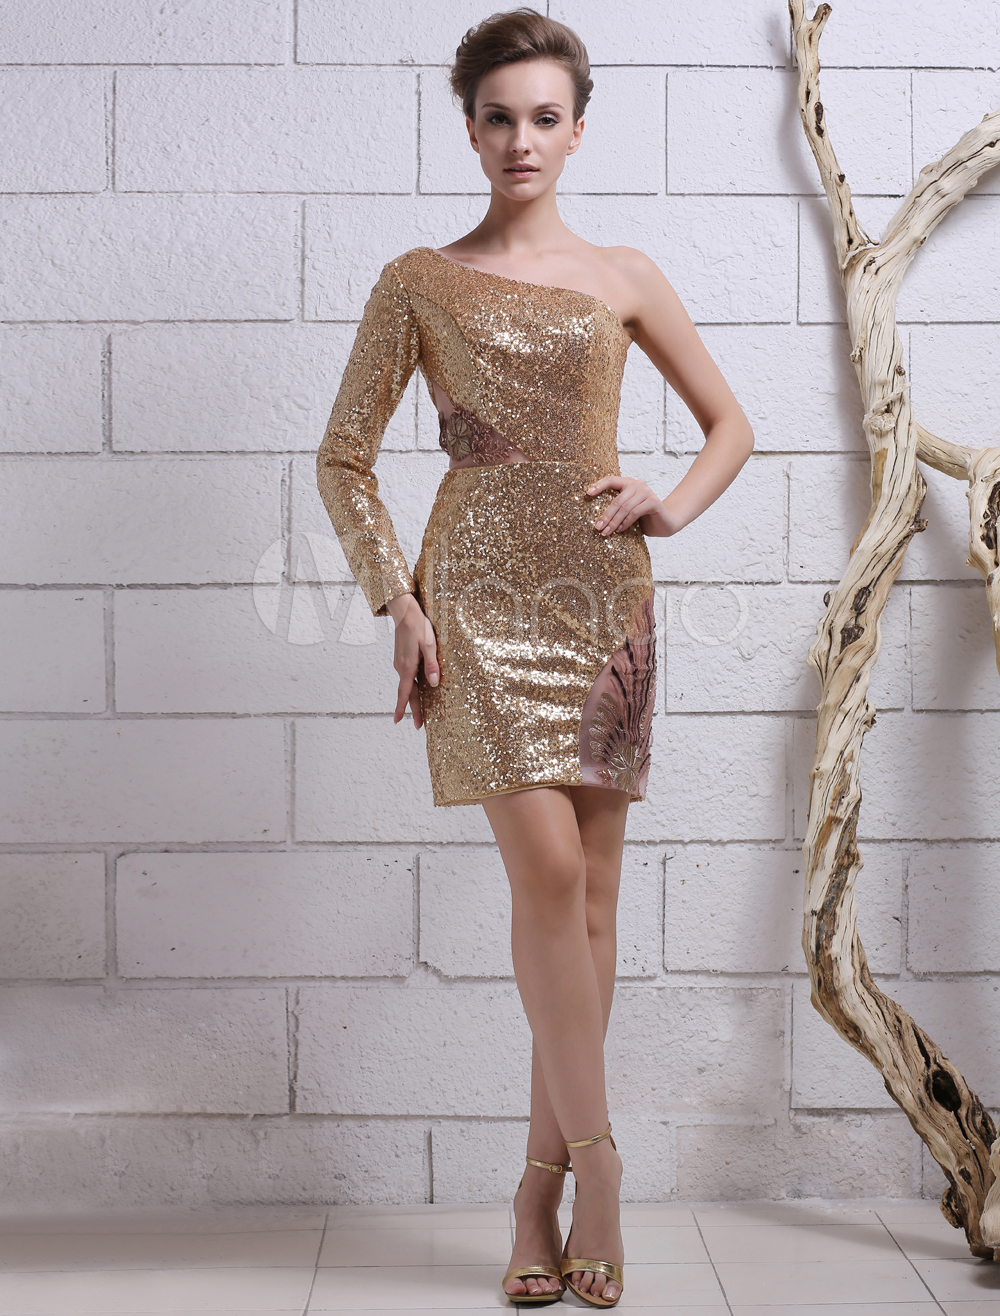 Gold Sheath One-Shoulder Embroidered Sequined Cocktail Dress with Long Sleeves Milanoo (Wedding Cocktail Dresses) photo